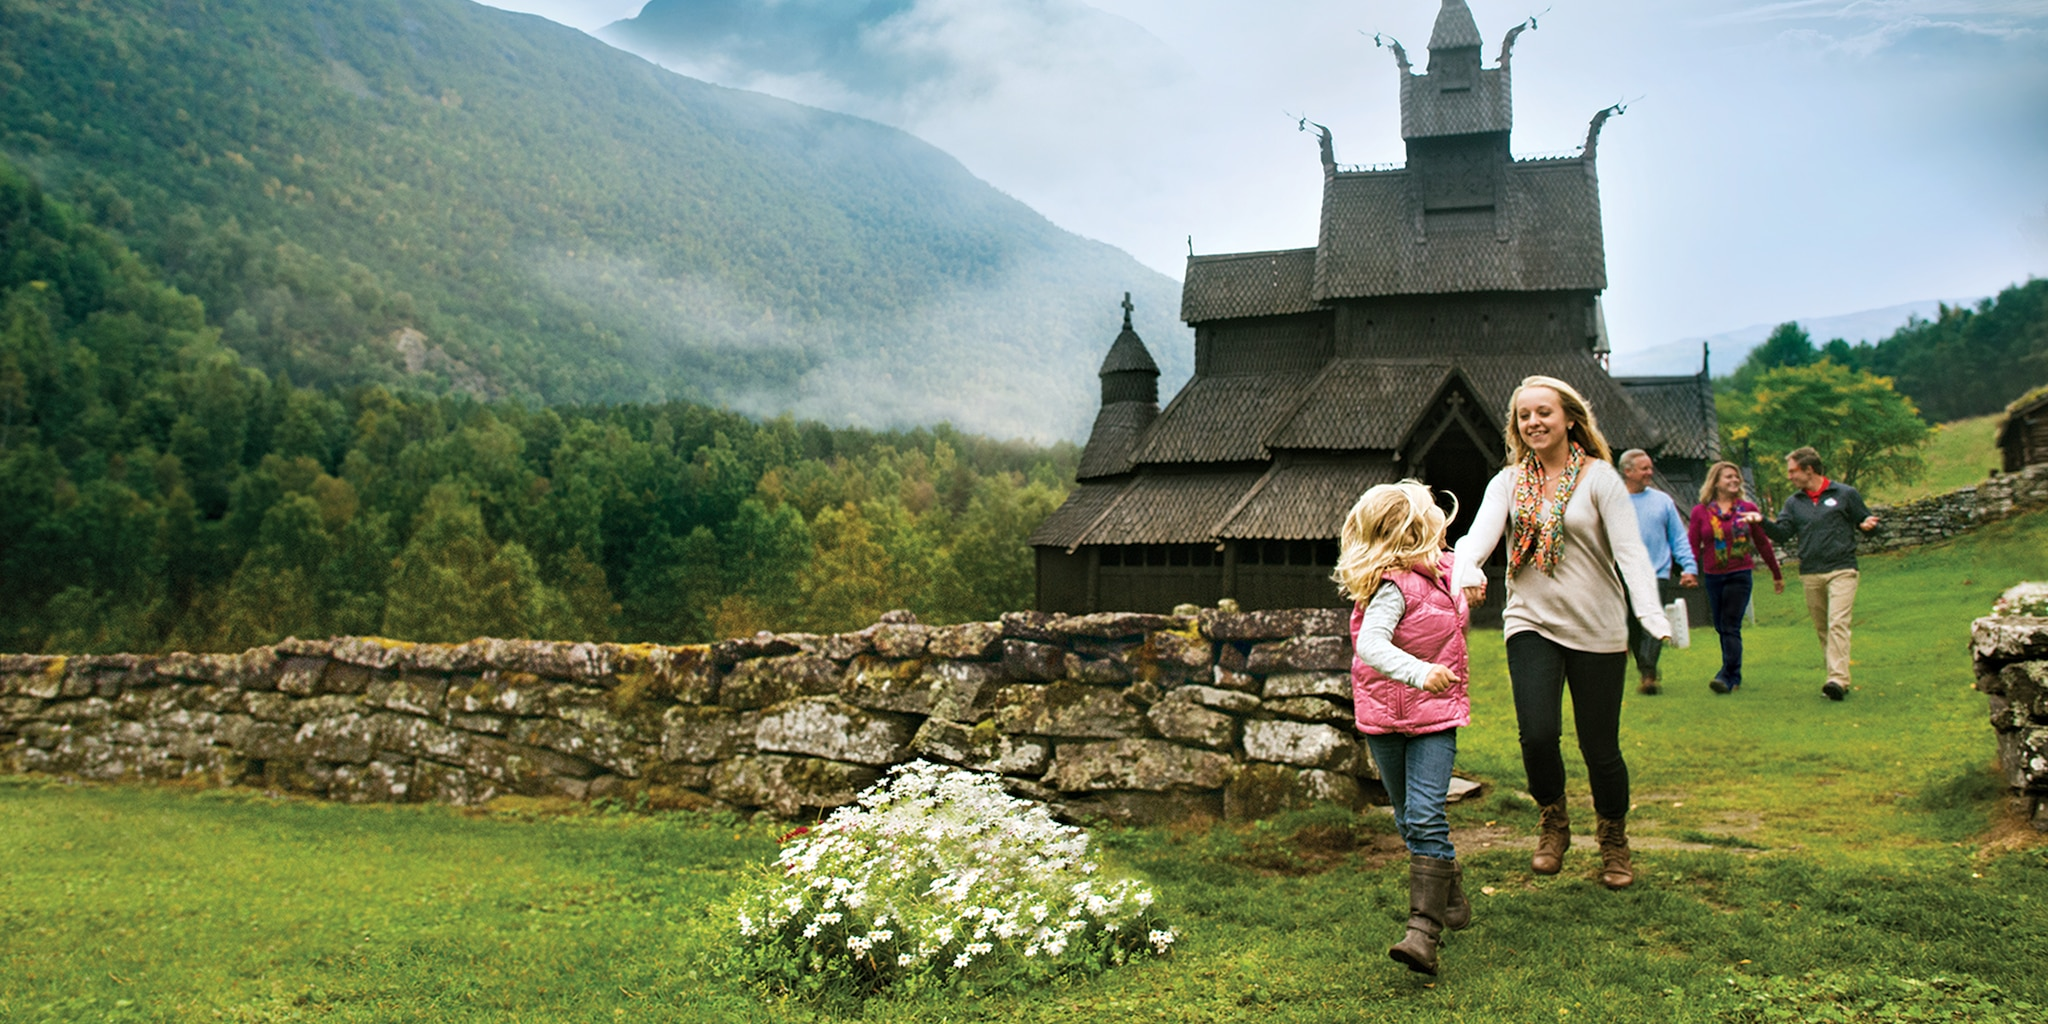 Two girls run ahead of their family, passing a stone fence in front of the Borgund Stave Church